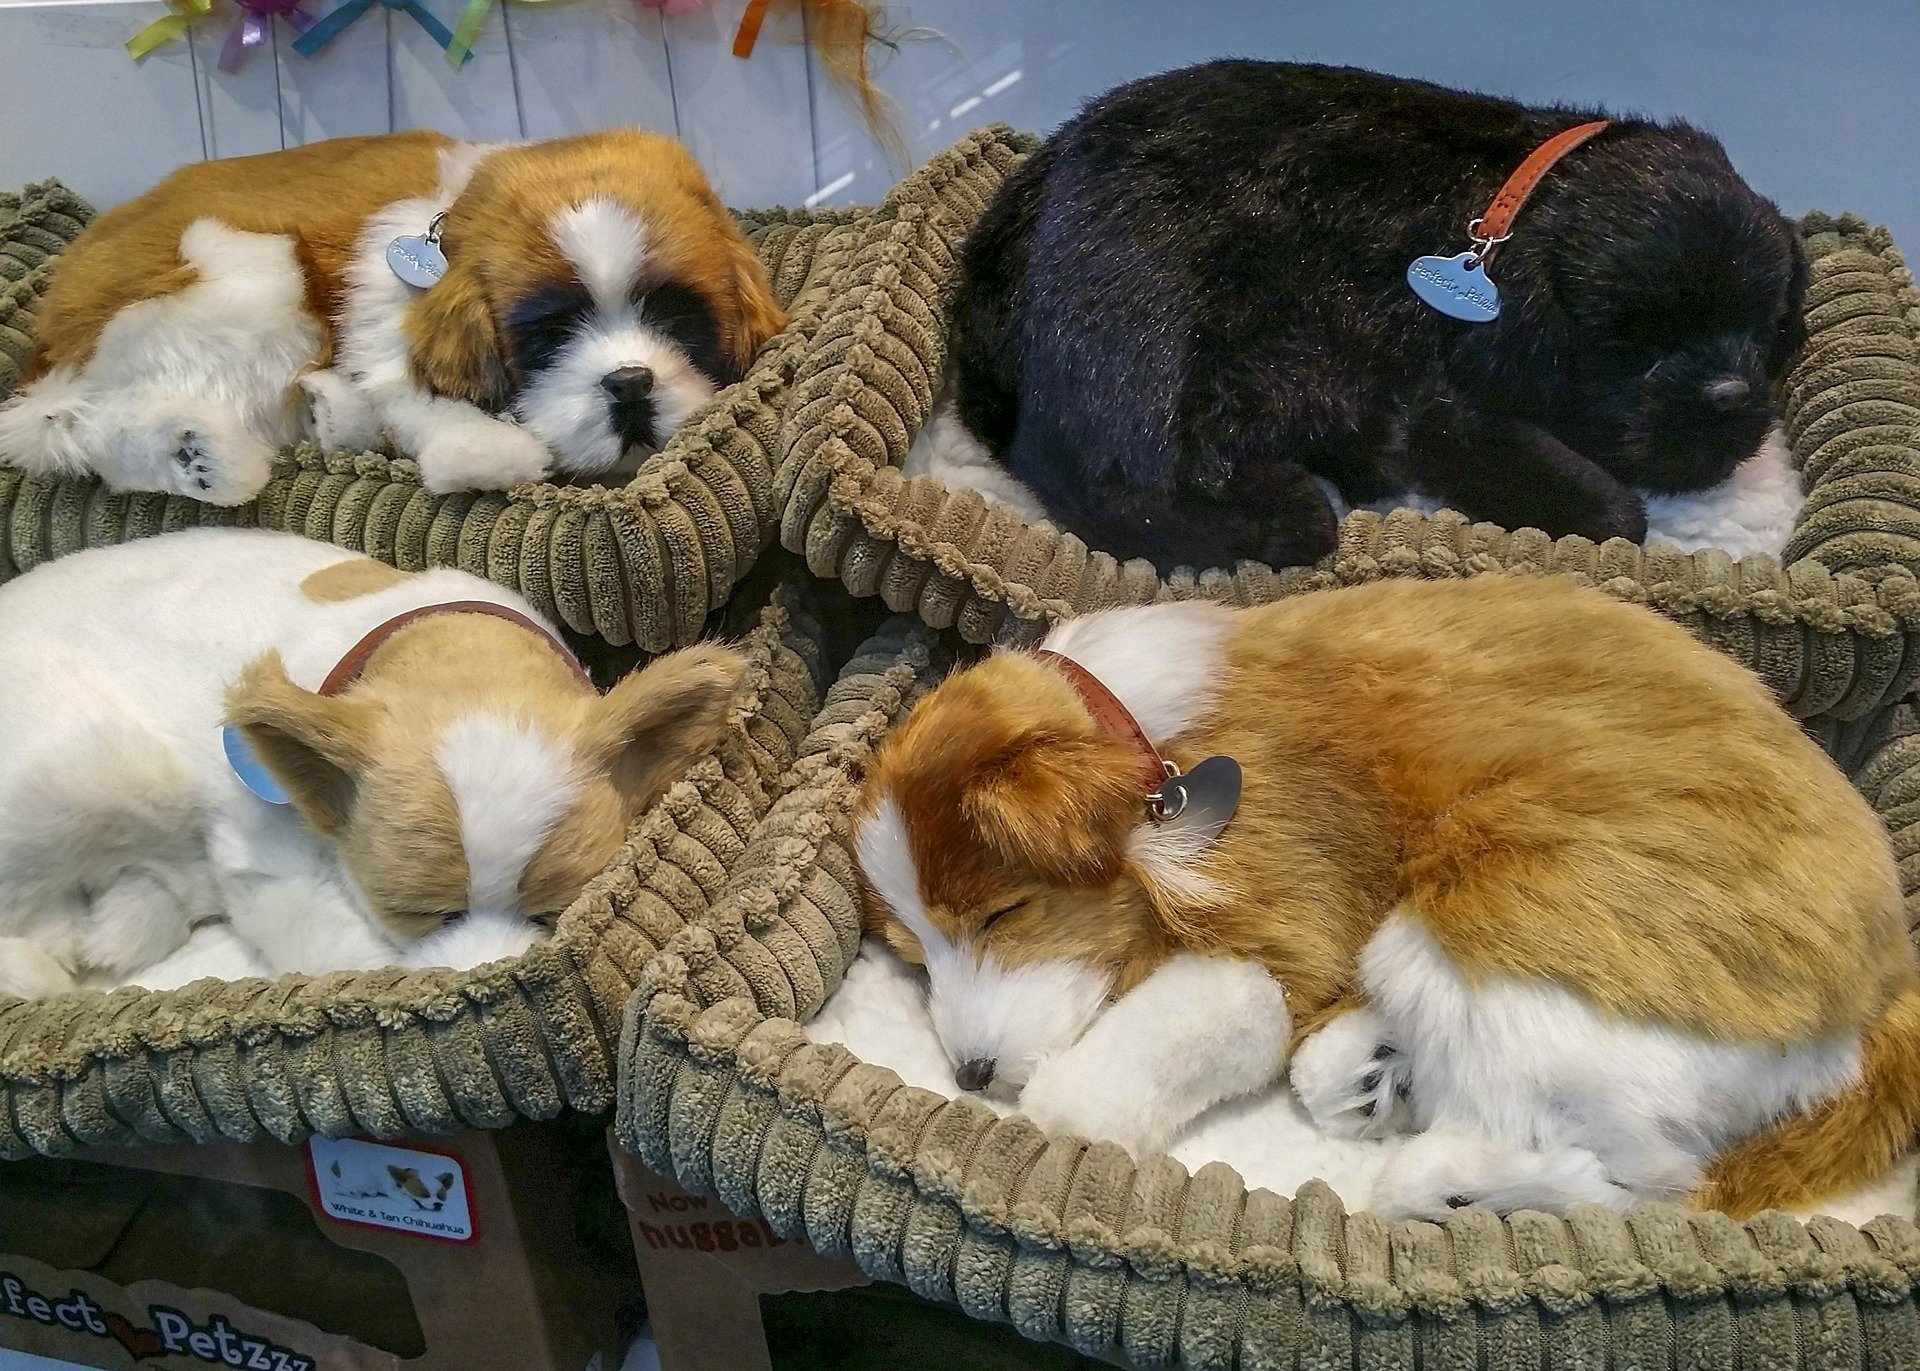 How to Care for Puppies-The Top 5 Tips On Caring for Puppies